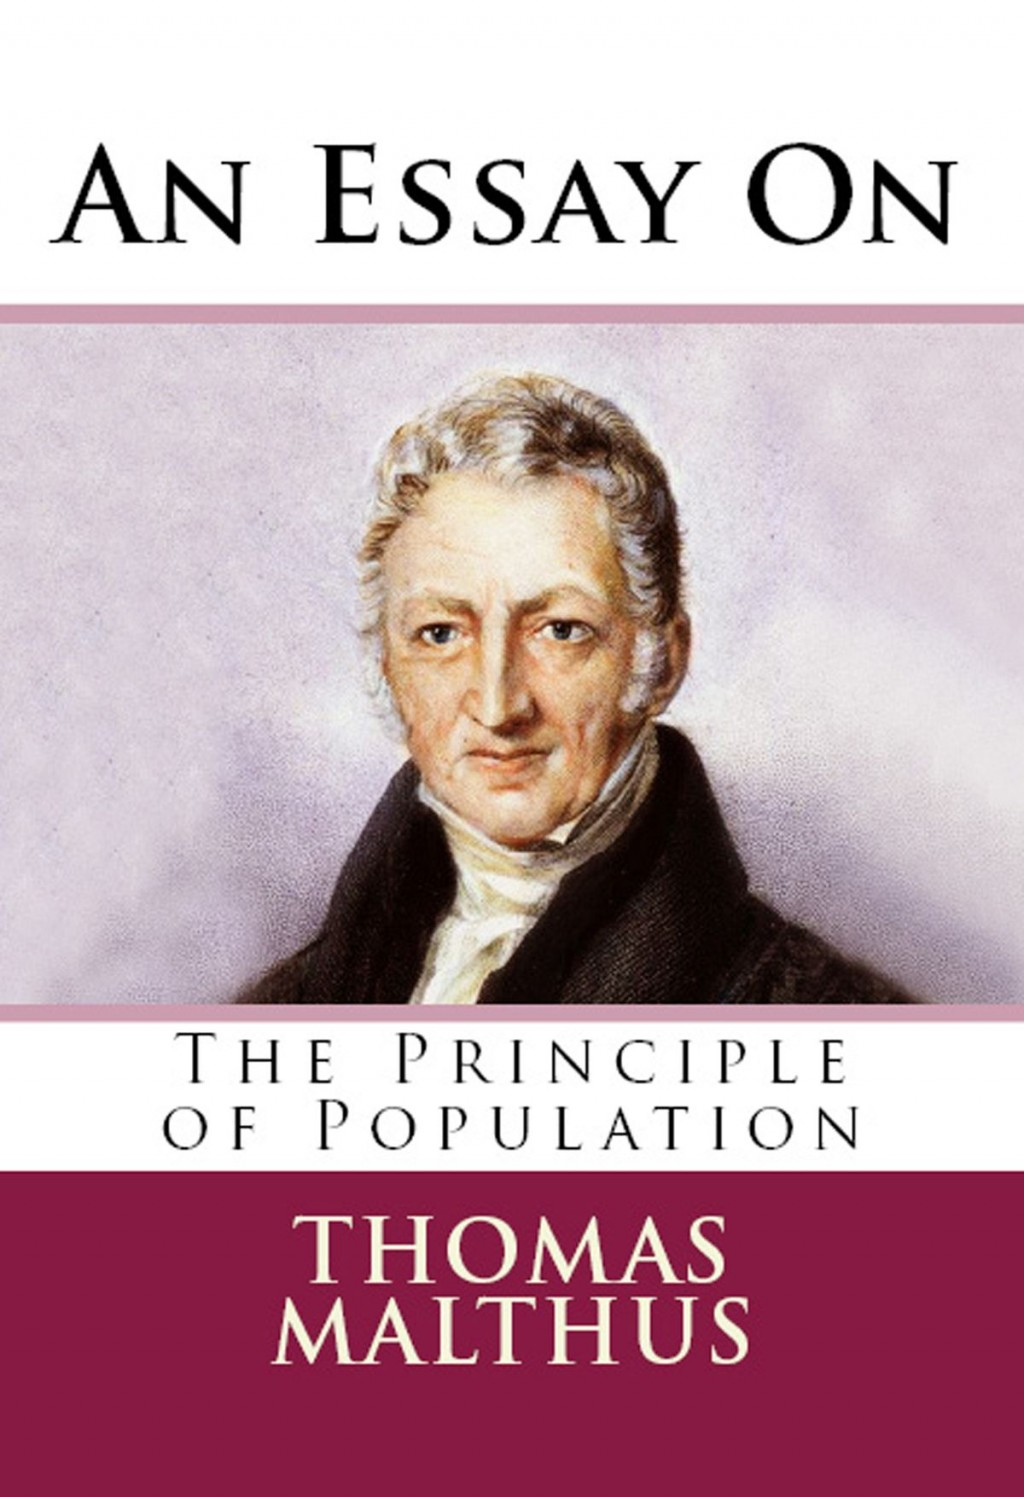 010 Essay On The Principle Of Population An Singular Thomas Malthus Sparknotes Advocated Ap Euro Large